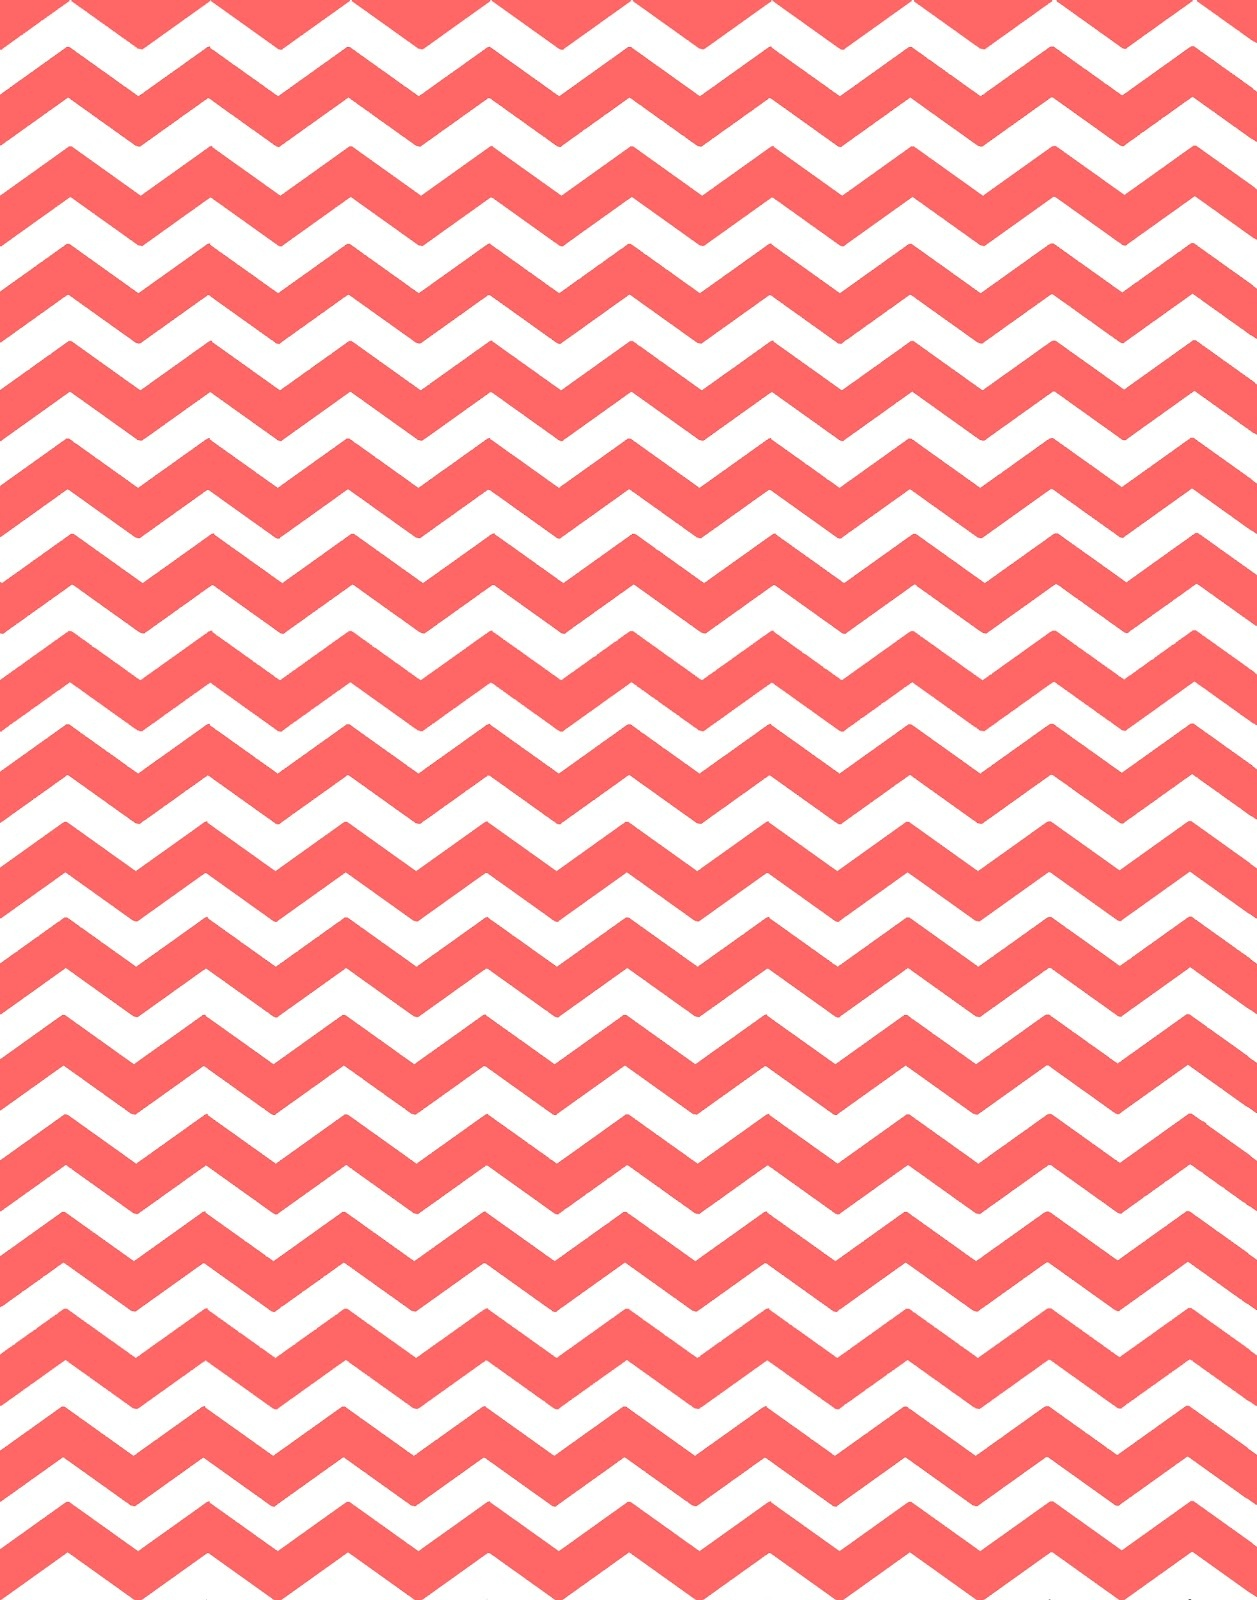 Download Doodlecraft 16 New Colors Chevron Background Patterns - Free Printable Wallpaper Patterns